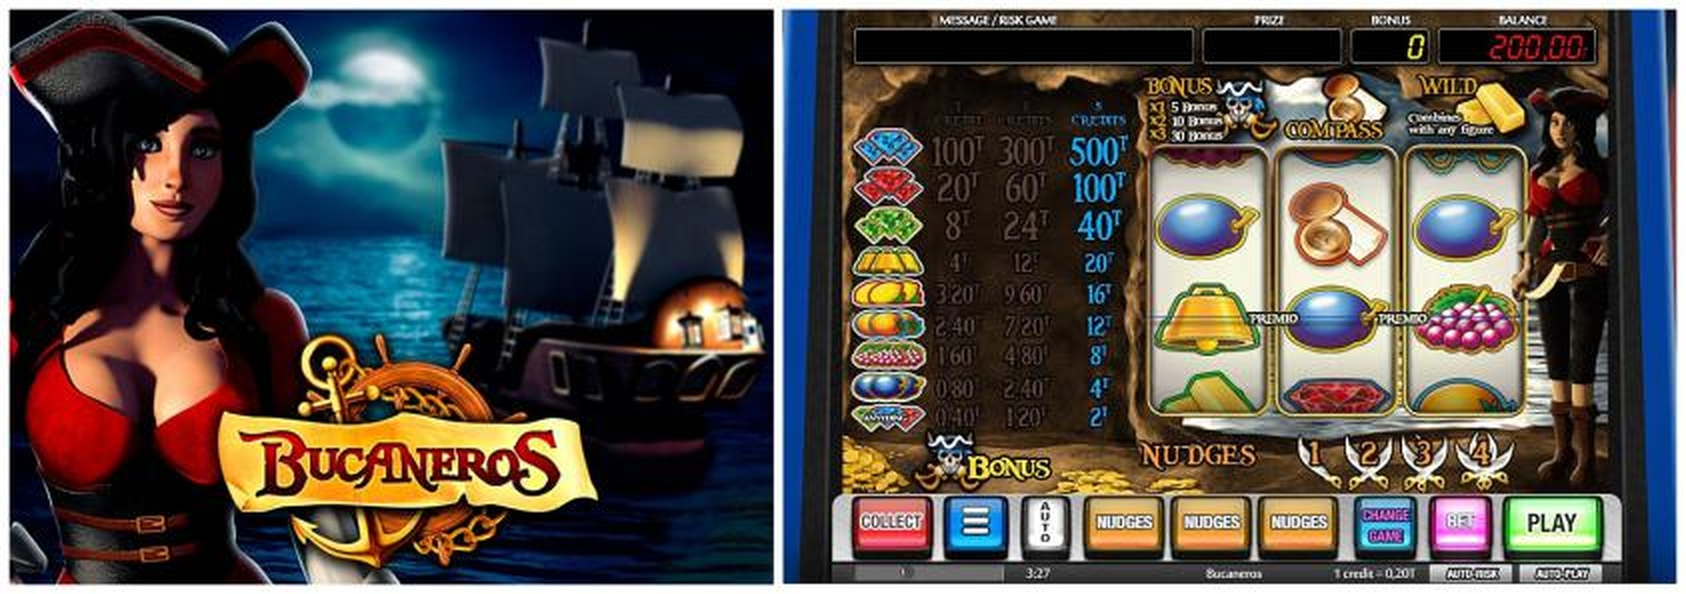 The Bucaneros Online Slot Demo Game by MGA